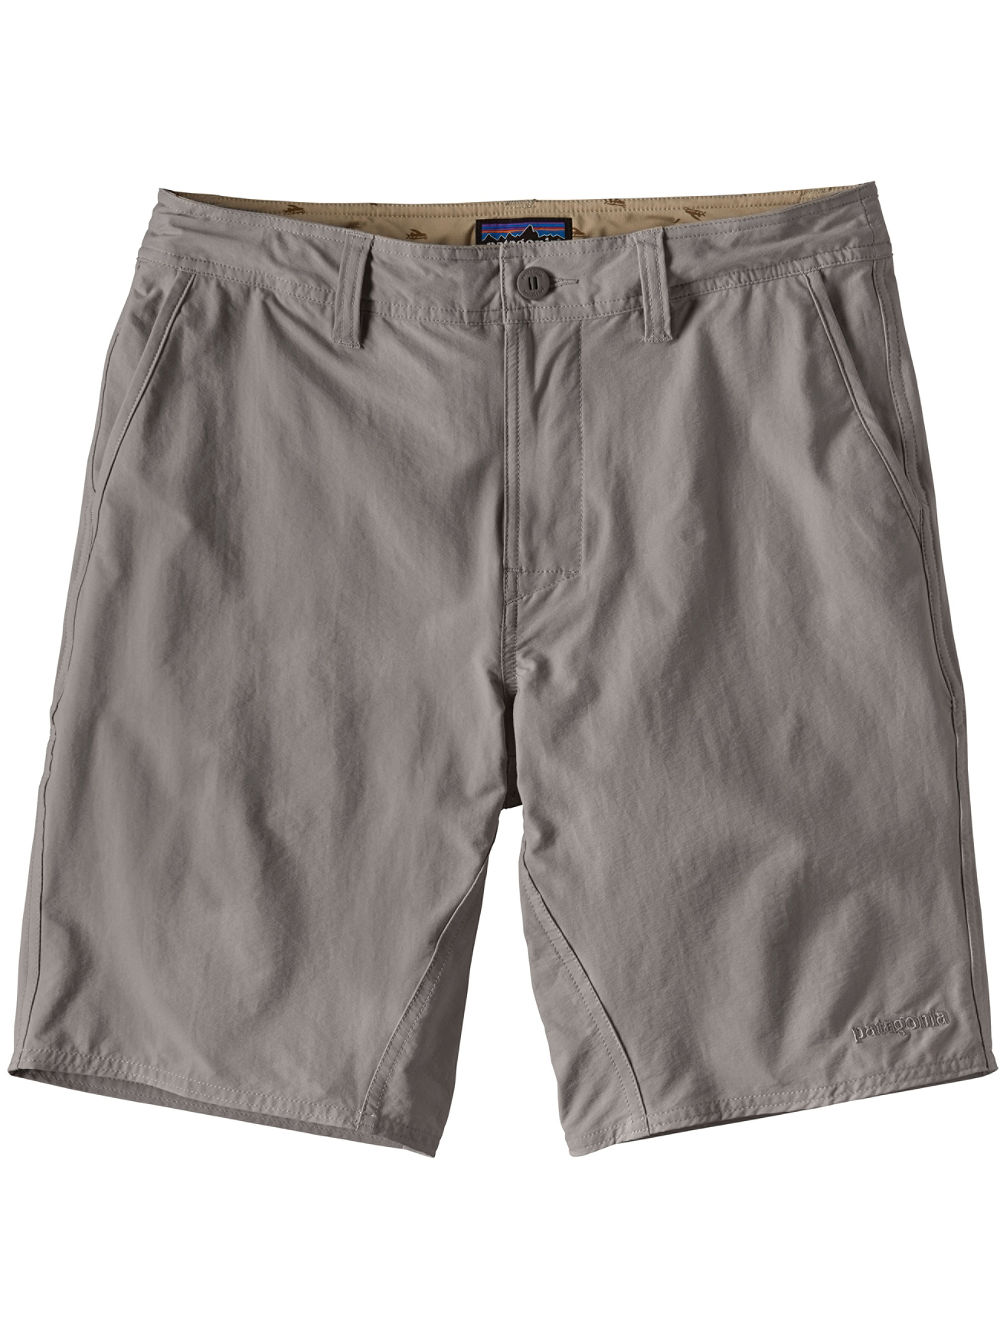 "Stretch Wavefarer 20"" Shorts"